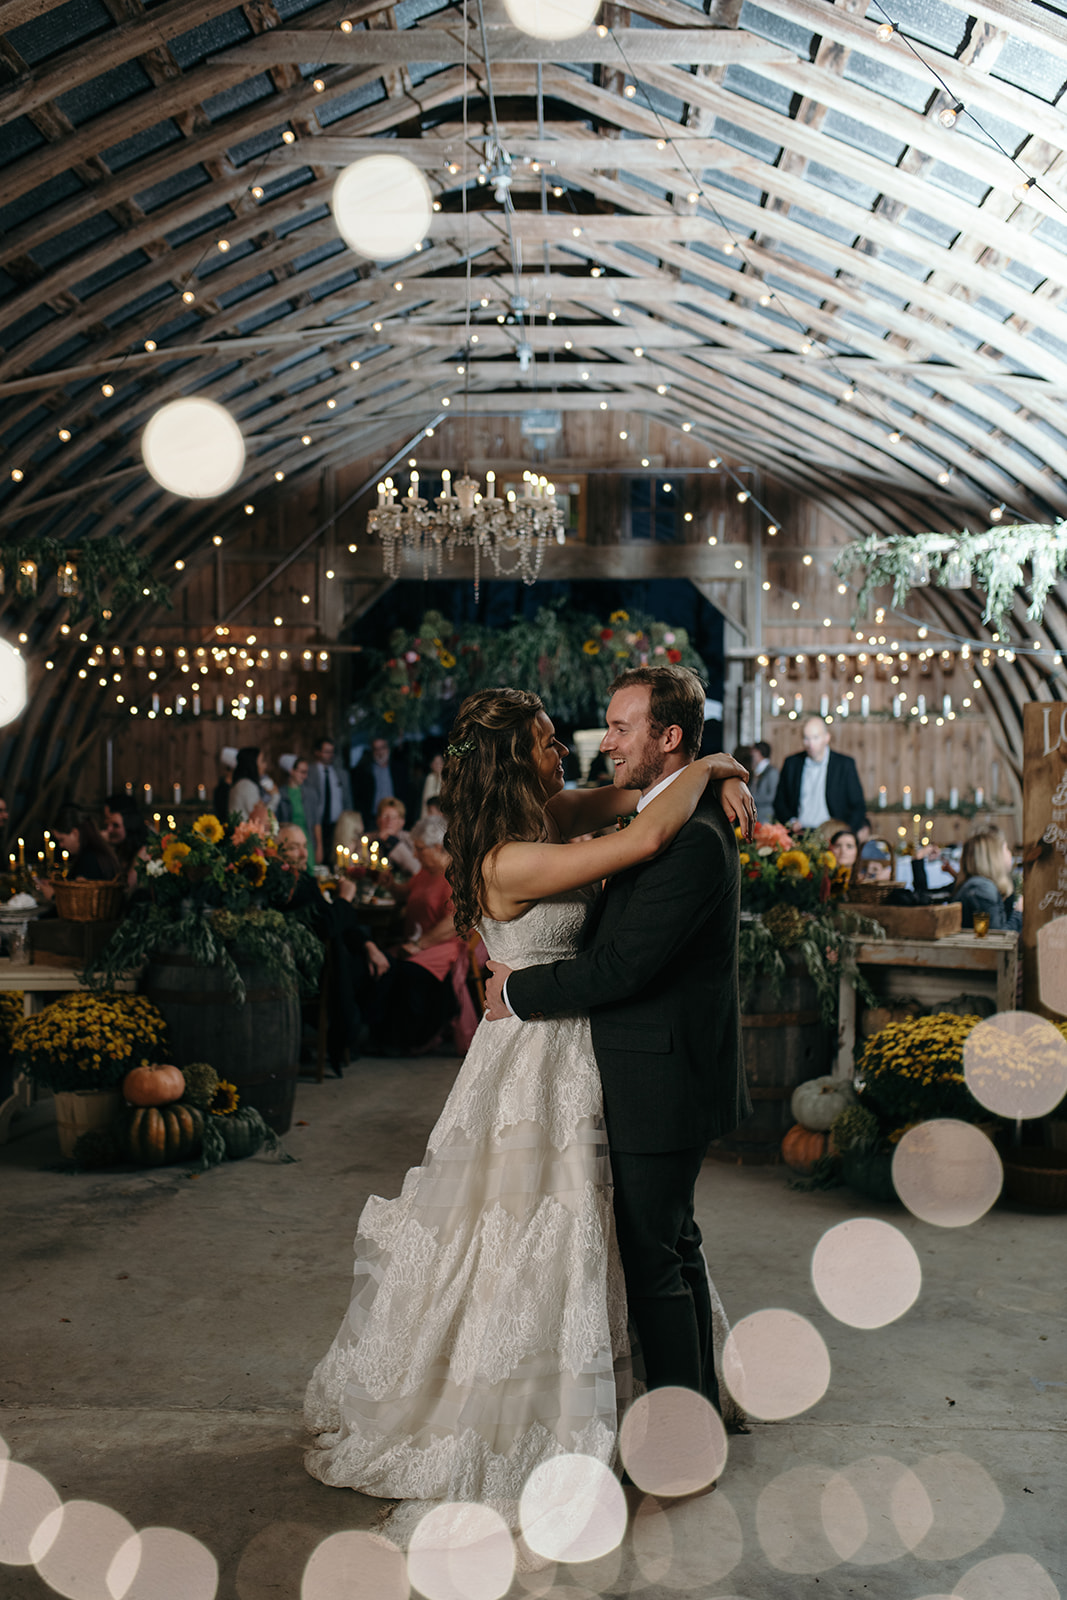 bride and groom first dance under twinkly lights the barn wedding venue